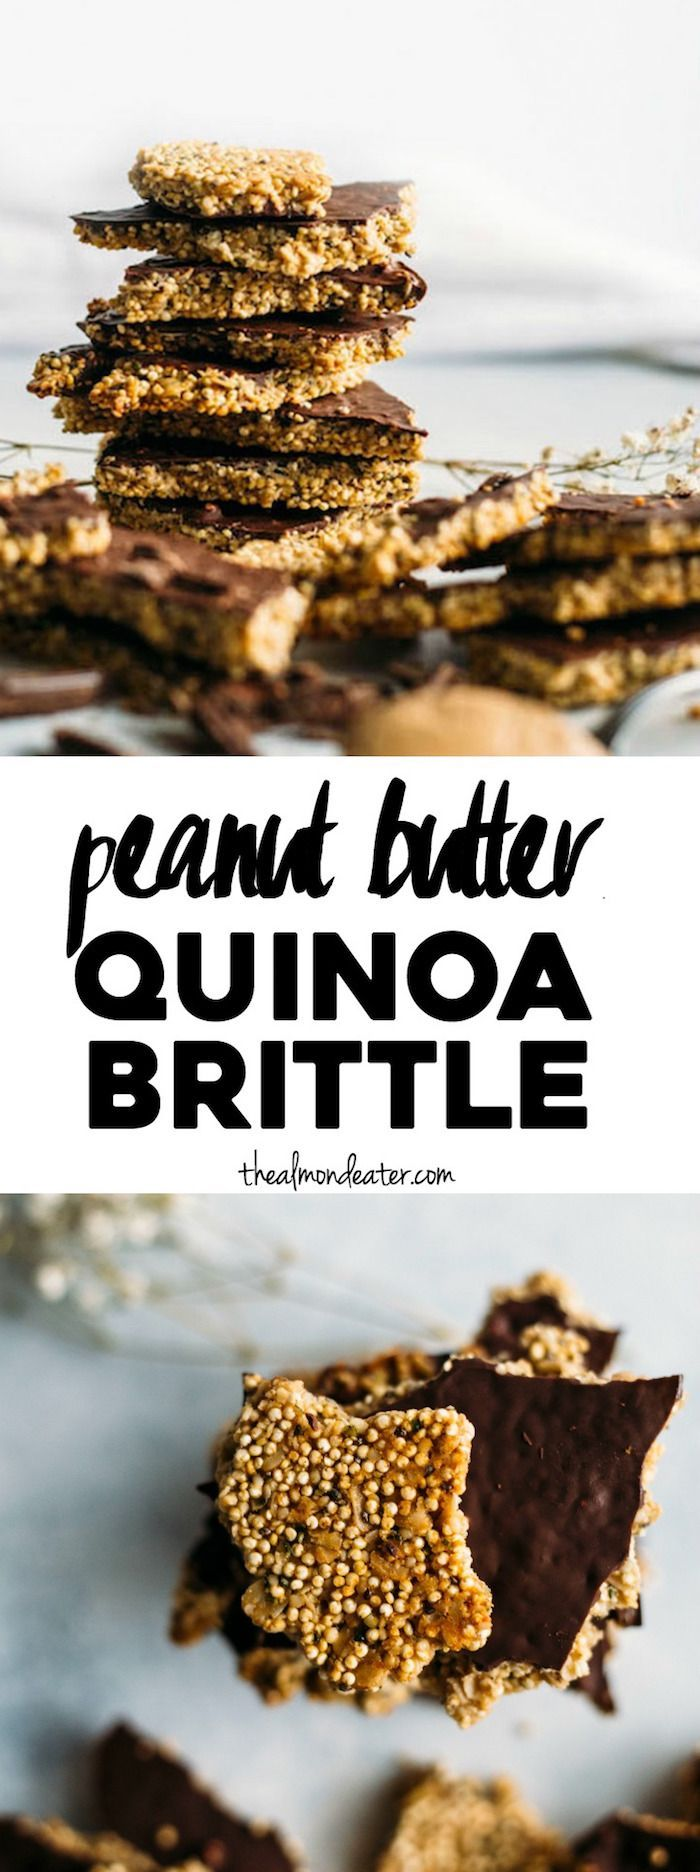 Peanut Butter Quinoa Brittle | A healthy snack packed with quinoa, superfoods and PEANUT BUTTER! | http://thealmondeater.com